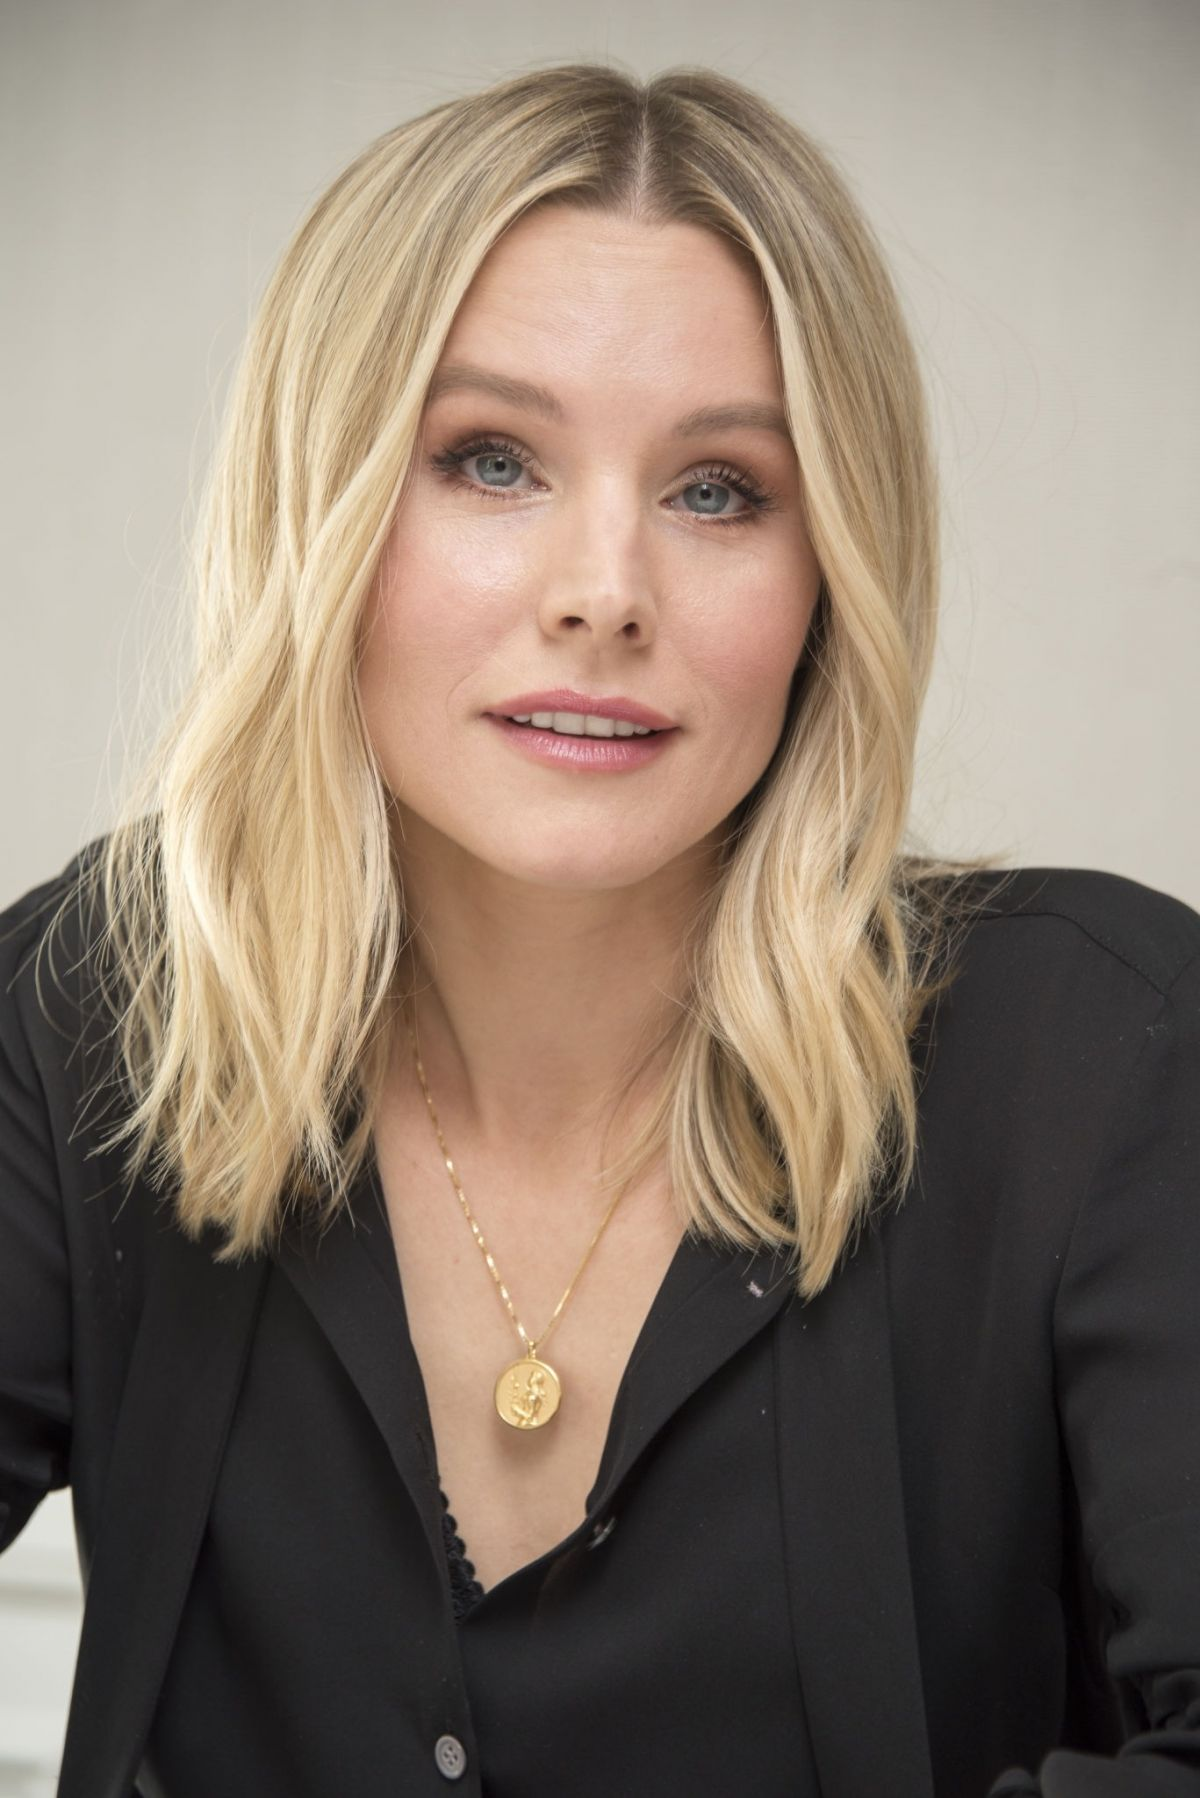 KRISTEN BELL at The Good Place Press Conference in Hollywood